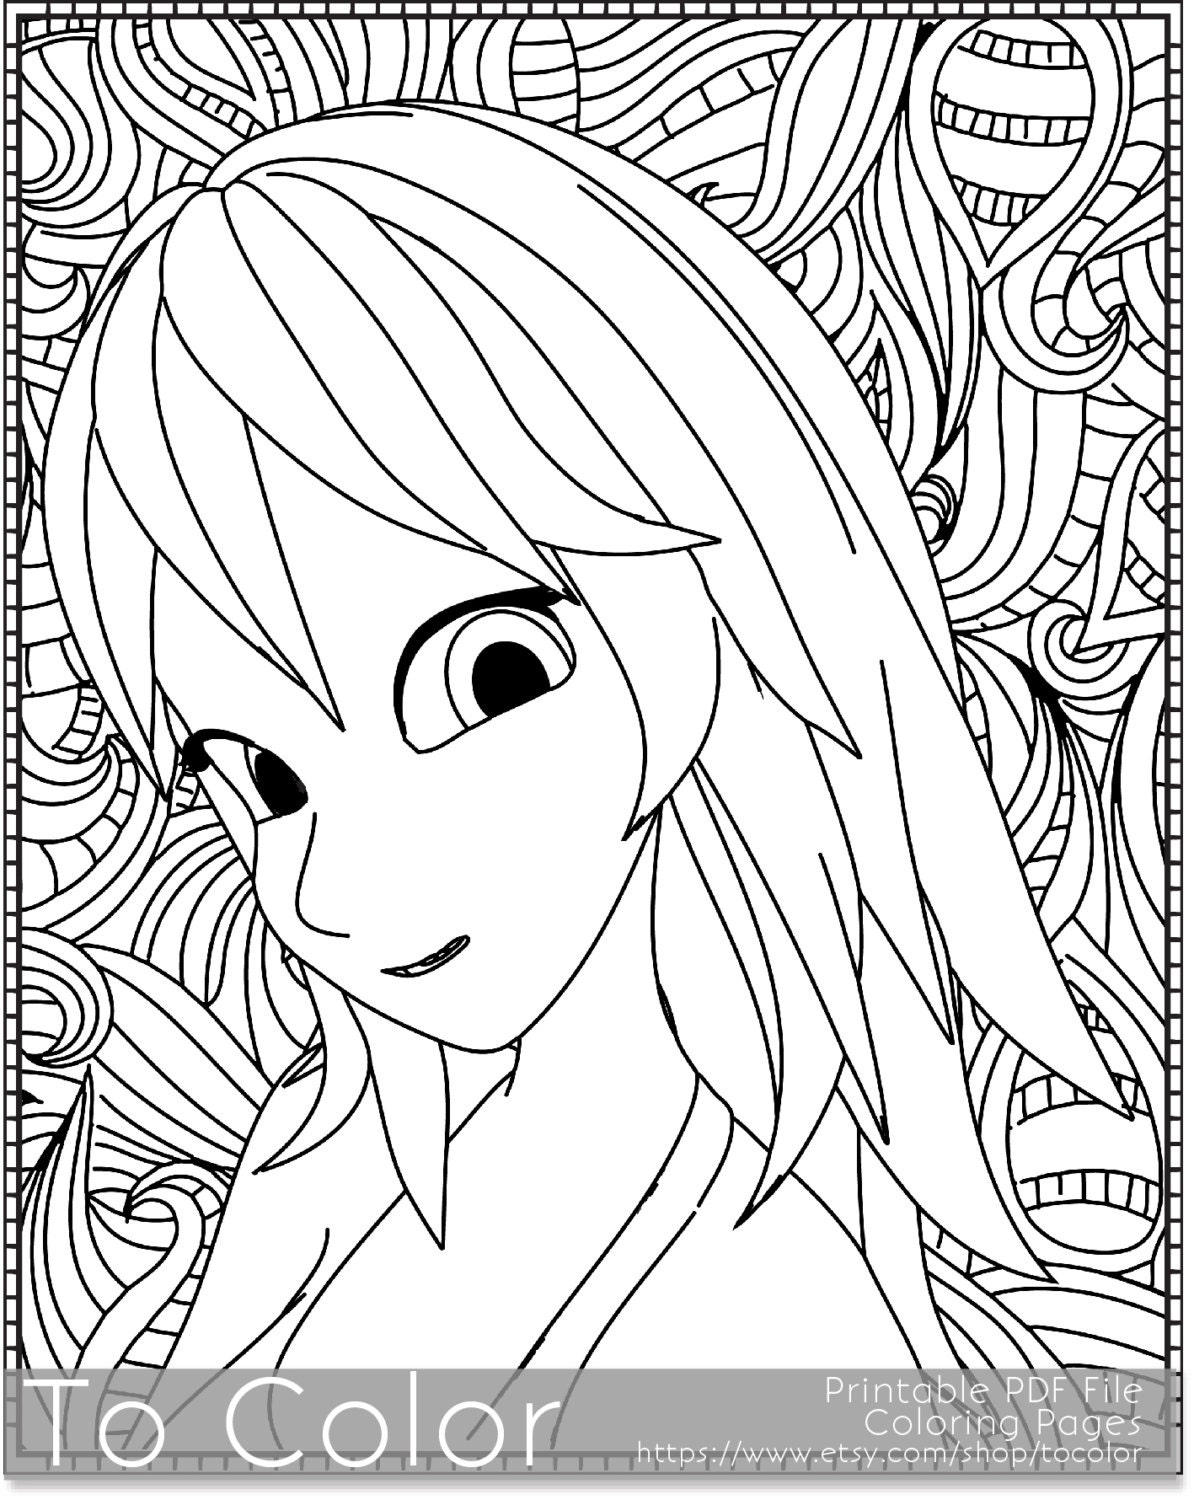 Retro girl printable coloring pages for adults 70s pdf for Retro coloring pages